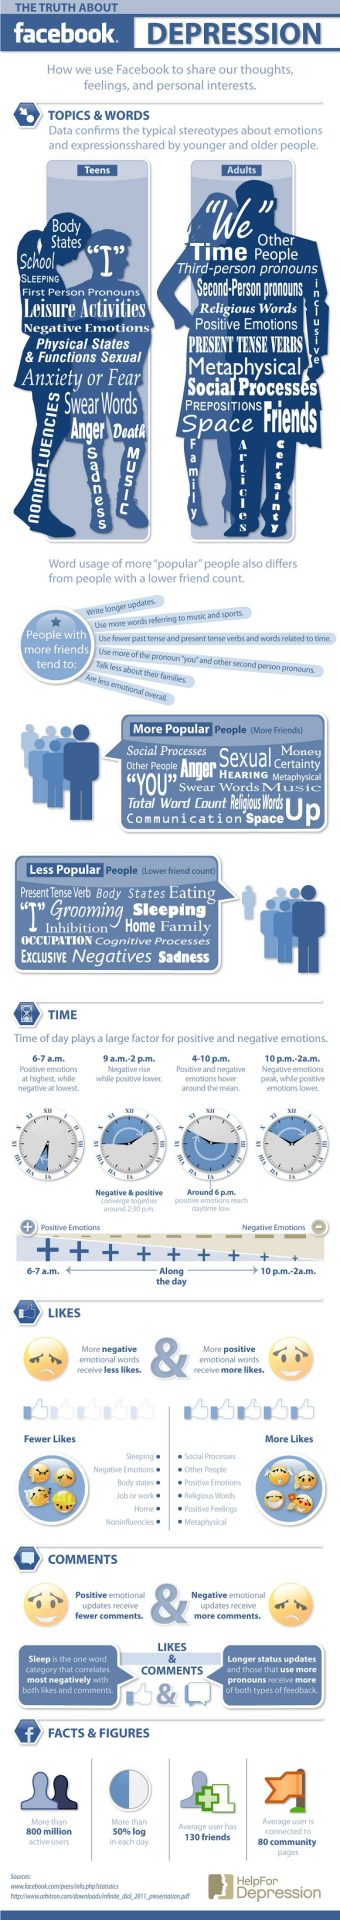 Positive Facebook Comments Get 'Likes' While Negative Content Gets Comments [Infographic]